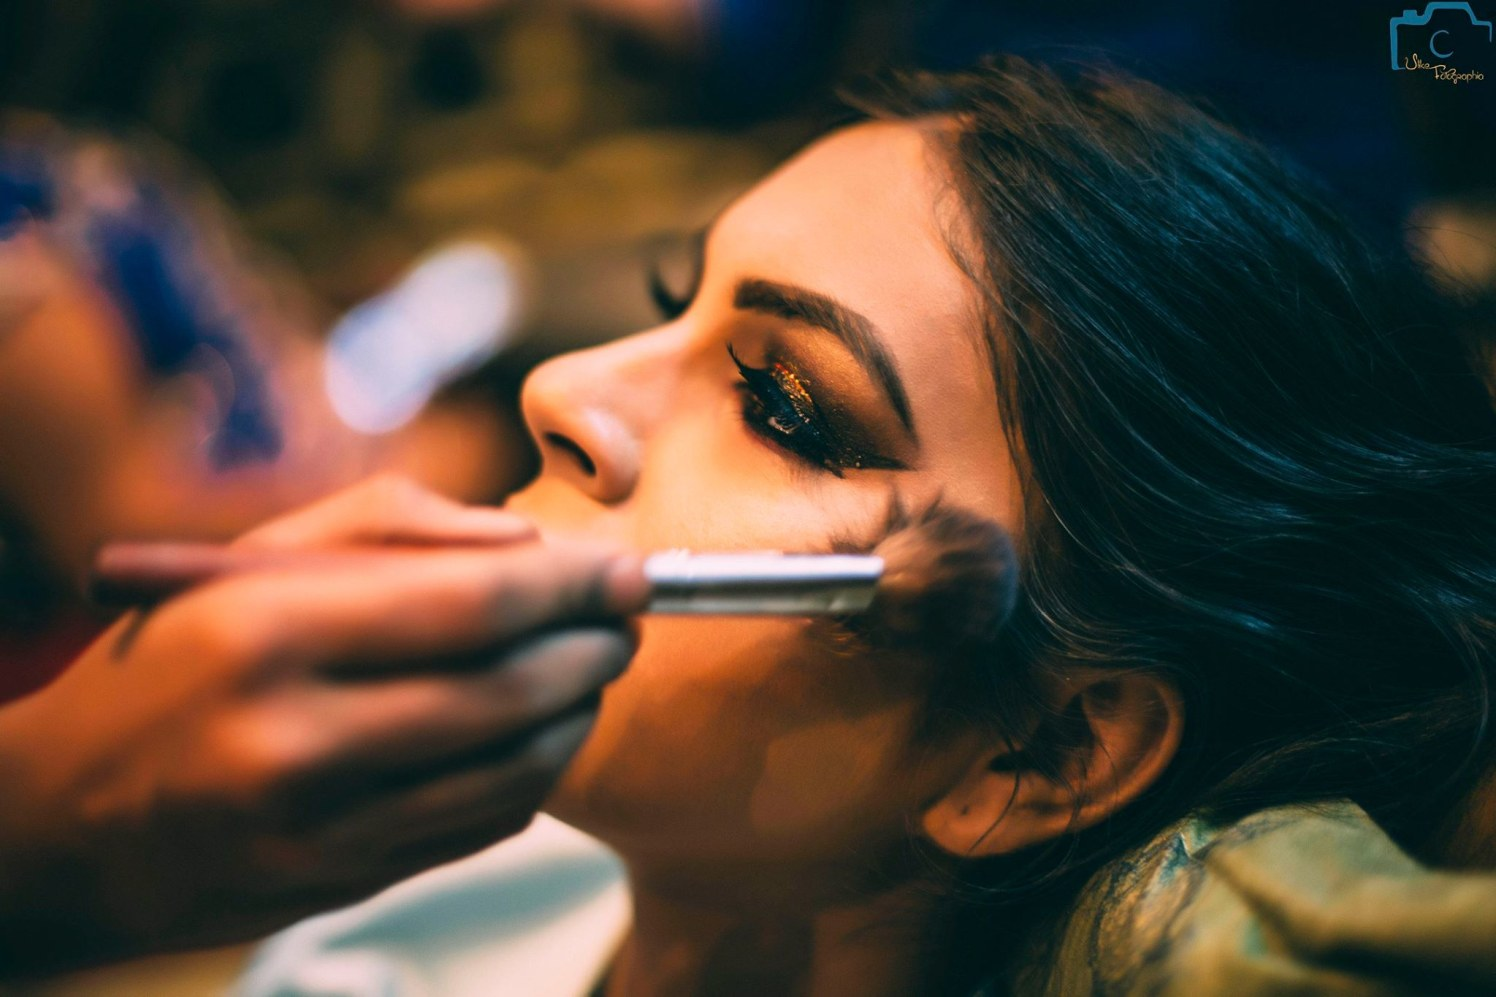 Makeup on fleek by ULike Fotographia Wedding-photography | Weddings Photos & Ideas